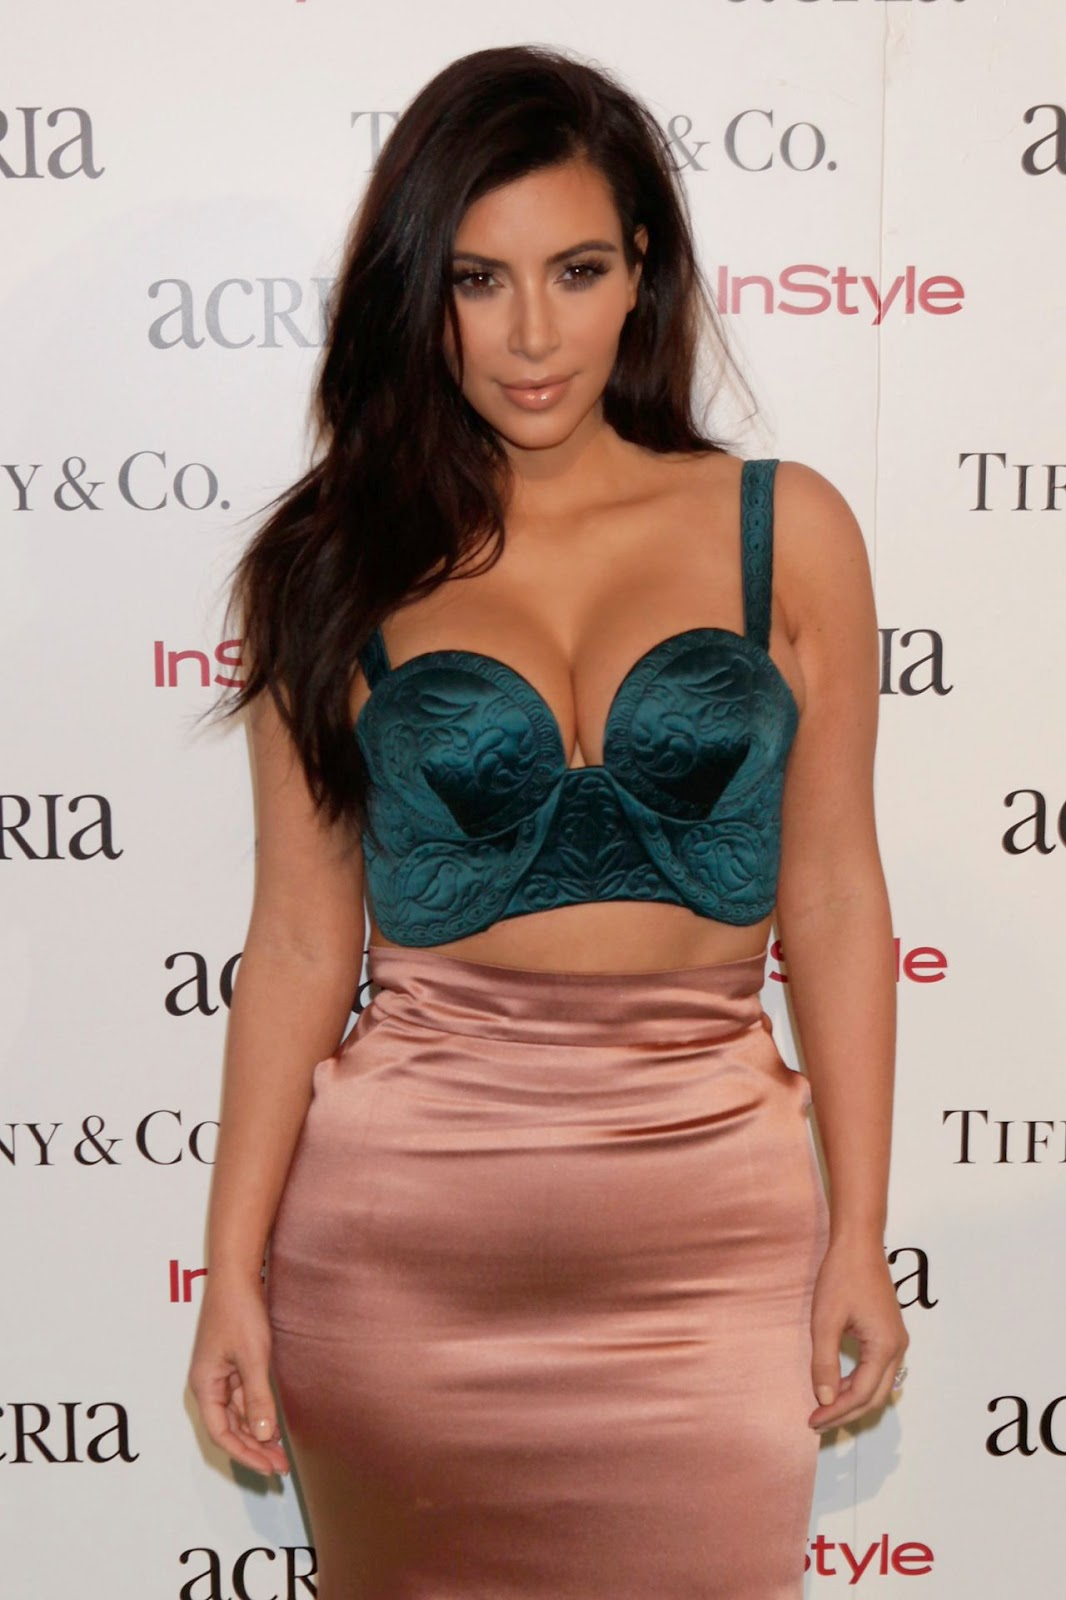 Kim Kardashian wears a bralet and pencil skirt to the 2014 ACRIA Holiday Dinner in NYC